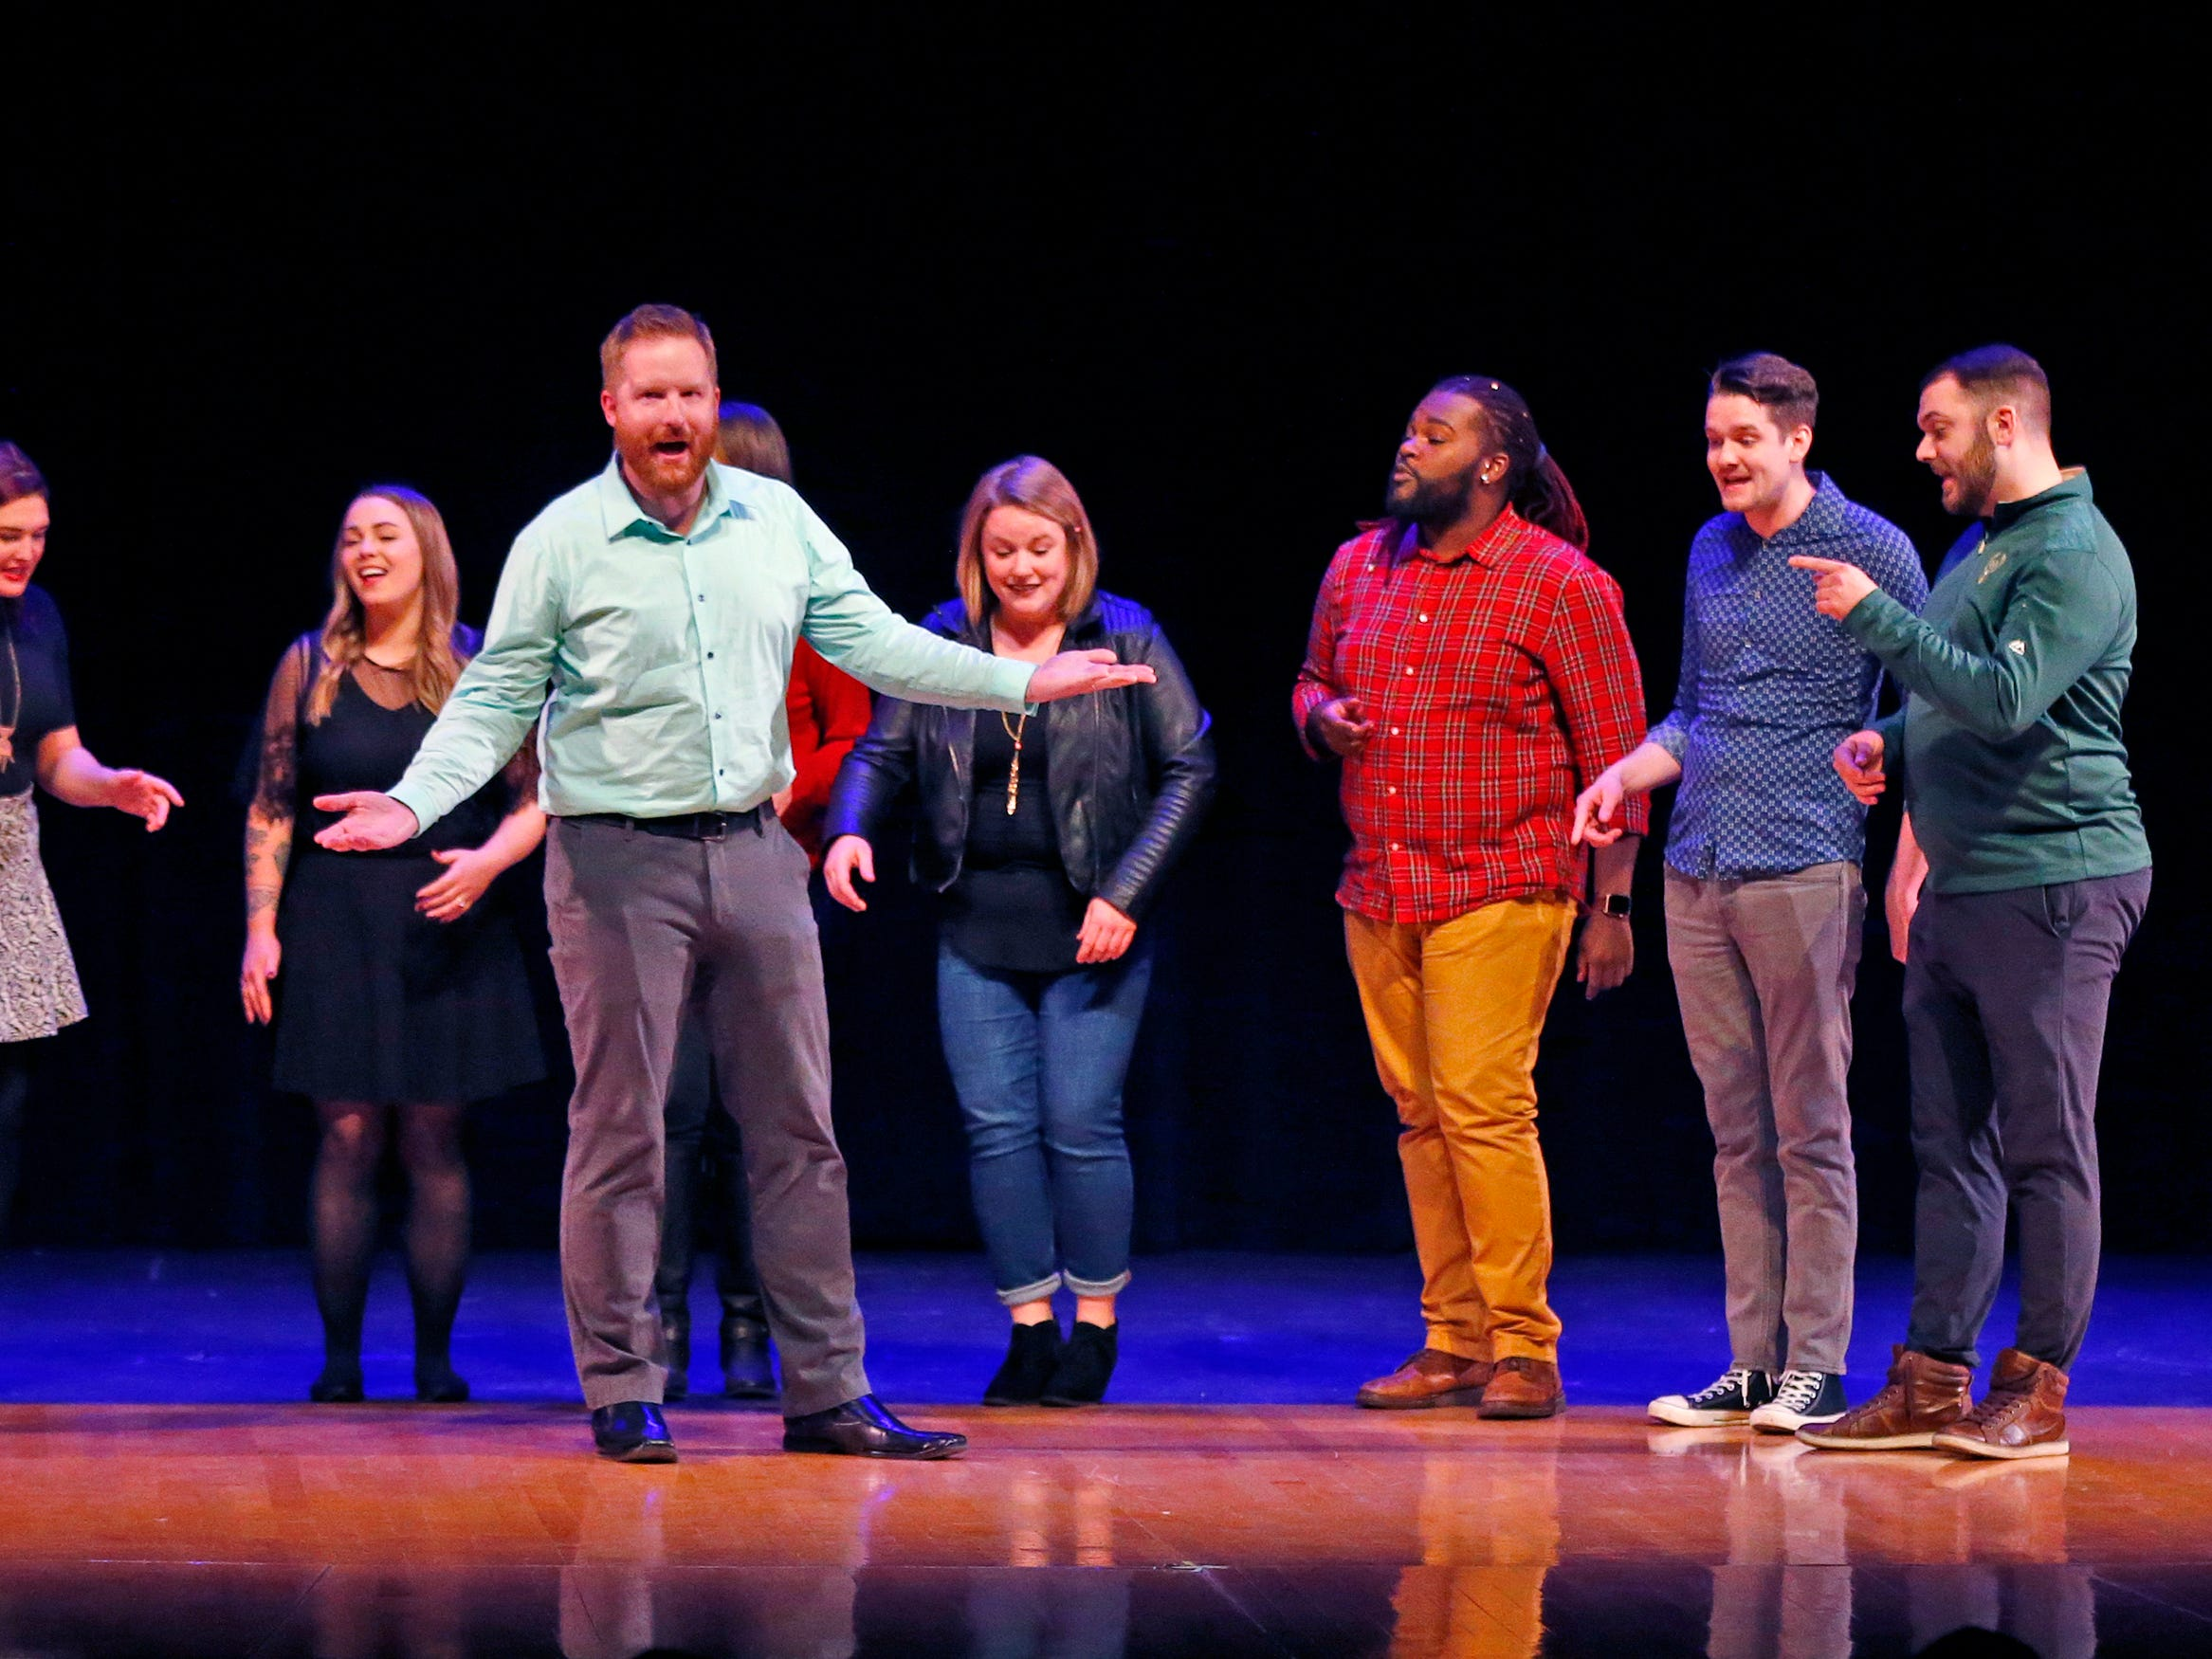 """The group 5 AM sings a cappella """"Shut Up and Dance With Me"""" during the 2018 Rocket Review to benefit the South Milwaukee High School Theatre Company at the Performing Arts Center on Dec. 20."""